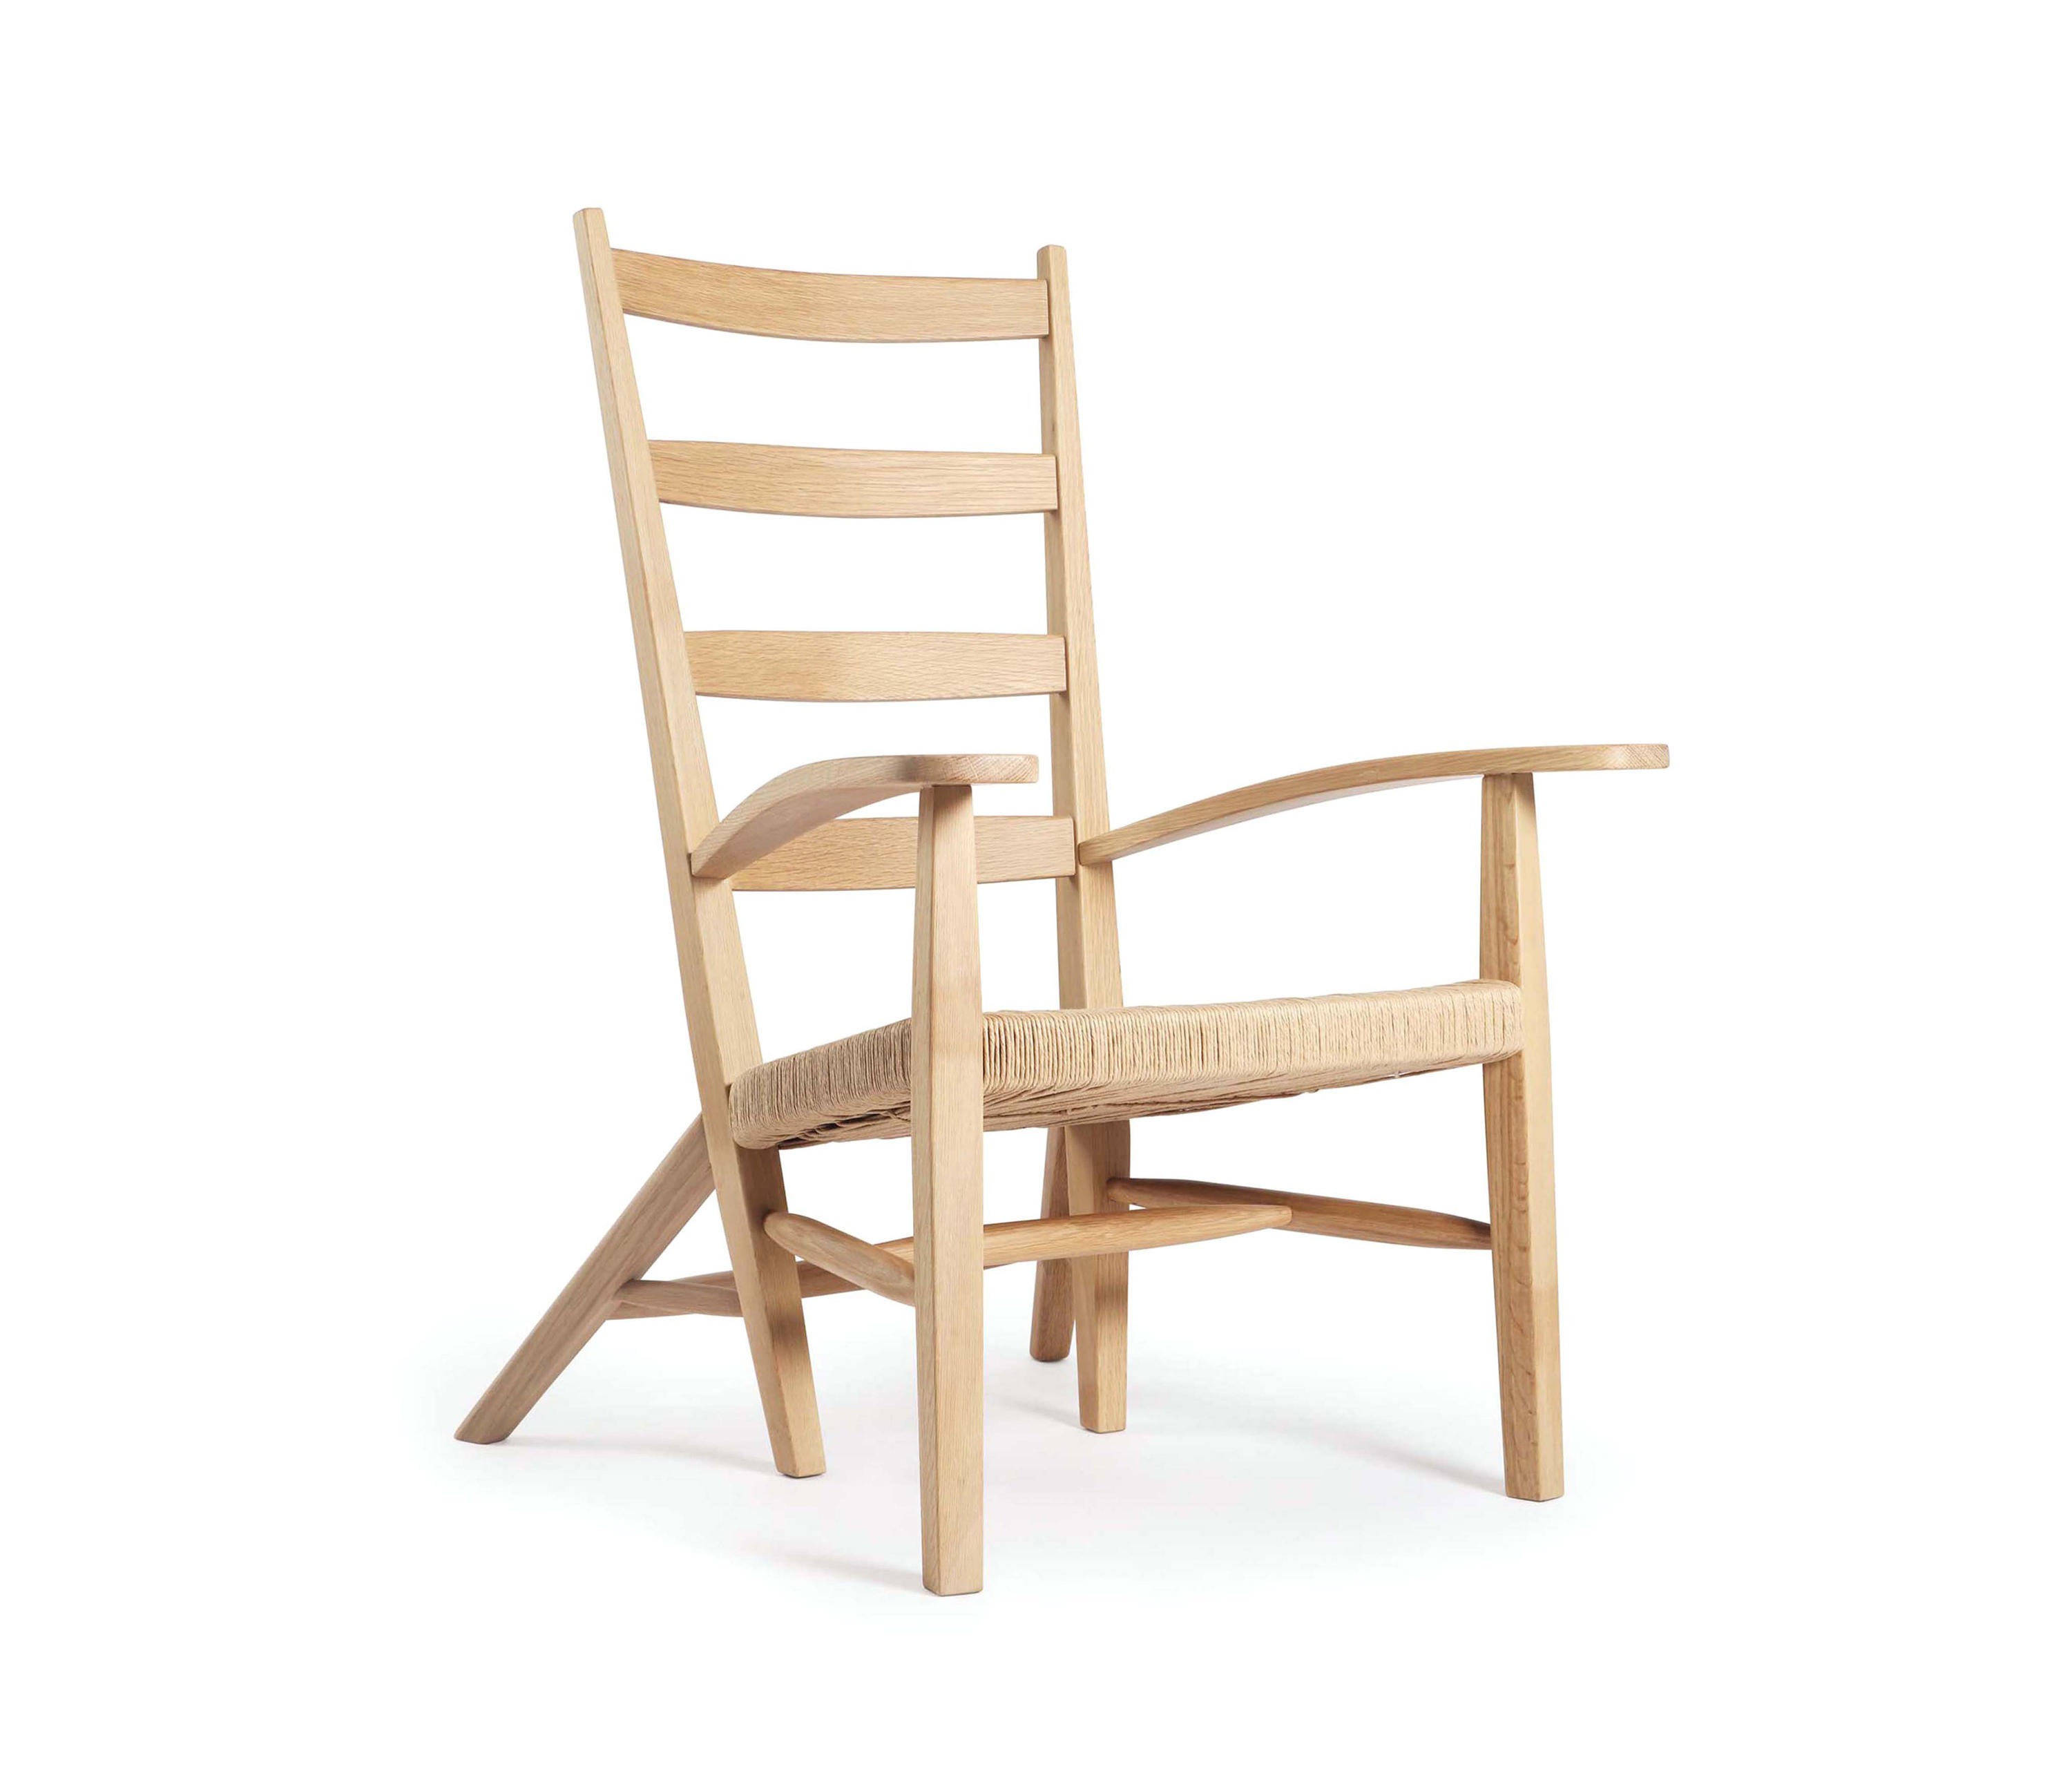 114 Mobles Mobles Grcia Stool Coat Stand Mirac Mobles